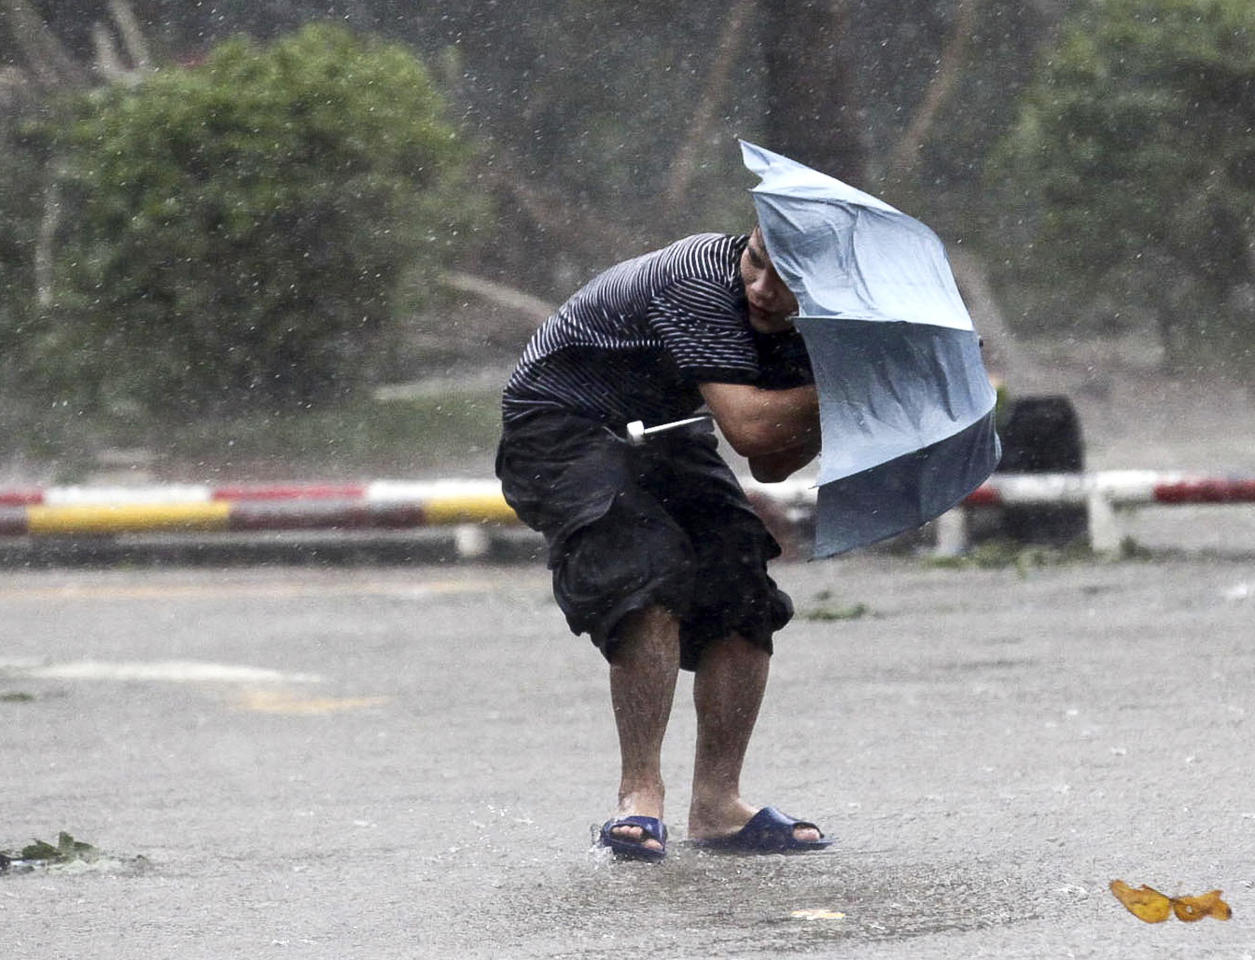 A man braves strong winds and rain on a street as typhoon Nesat hits Haikou in south China's Hainan province, Thursday, Sept. 29, 2011. The powerful typhoon slammed into southern China on Thursday after skirting Hong Kong and bringing death and widespread flooding to the Philippines earlier this week. (AP Photo) CHINA OUT